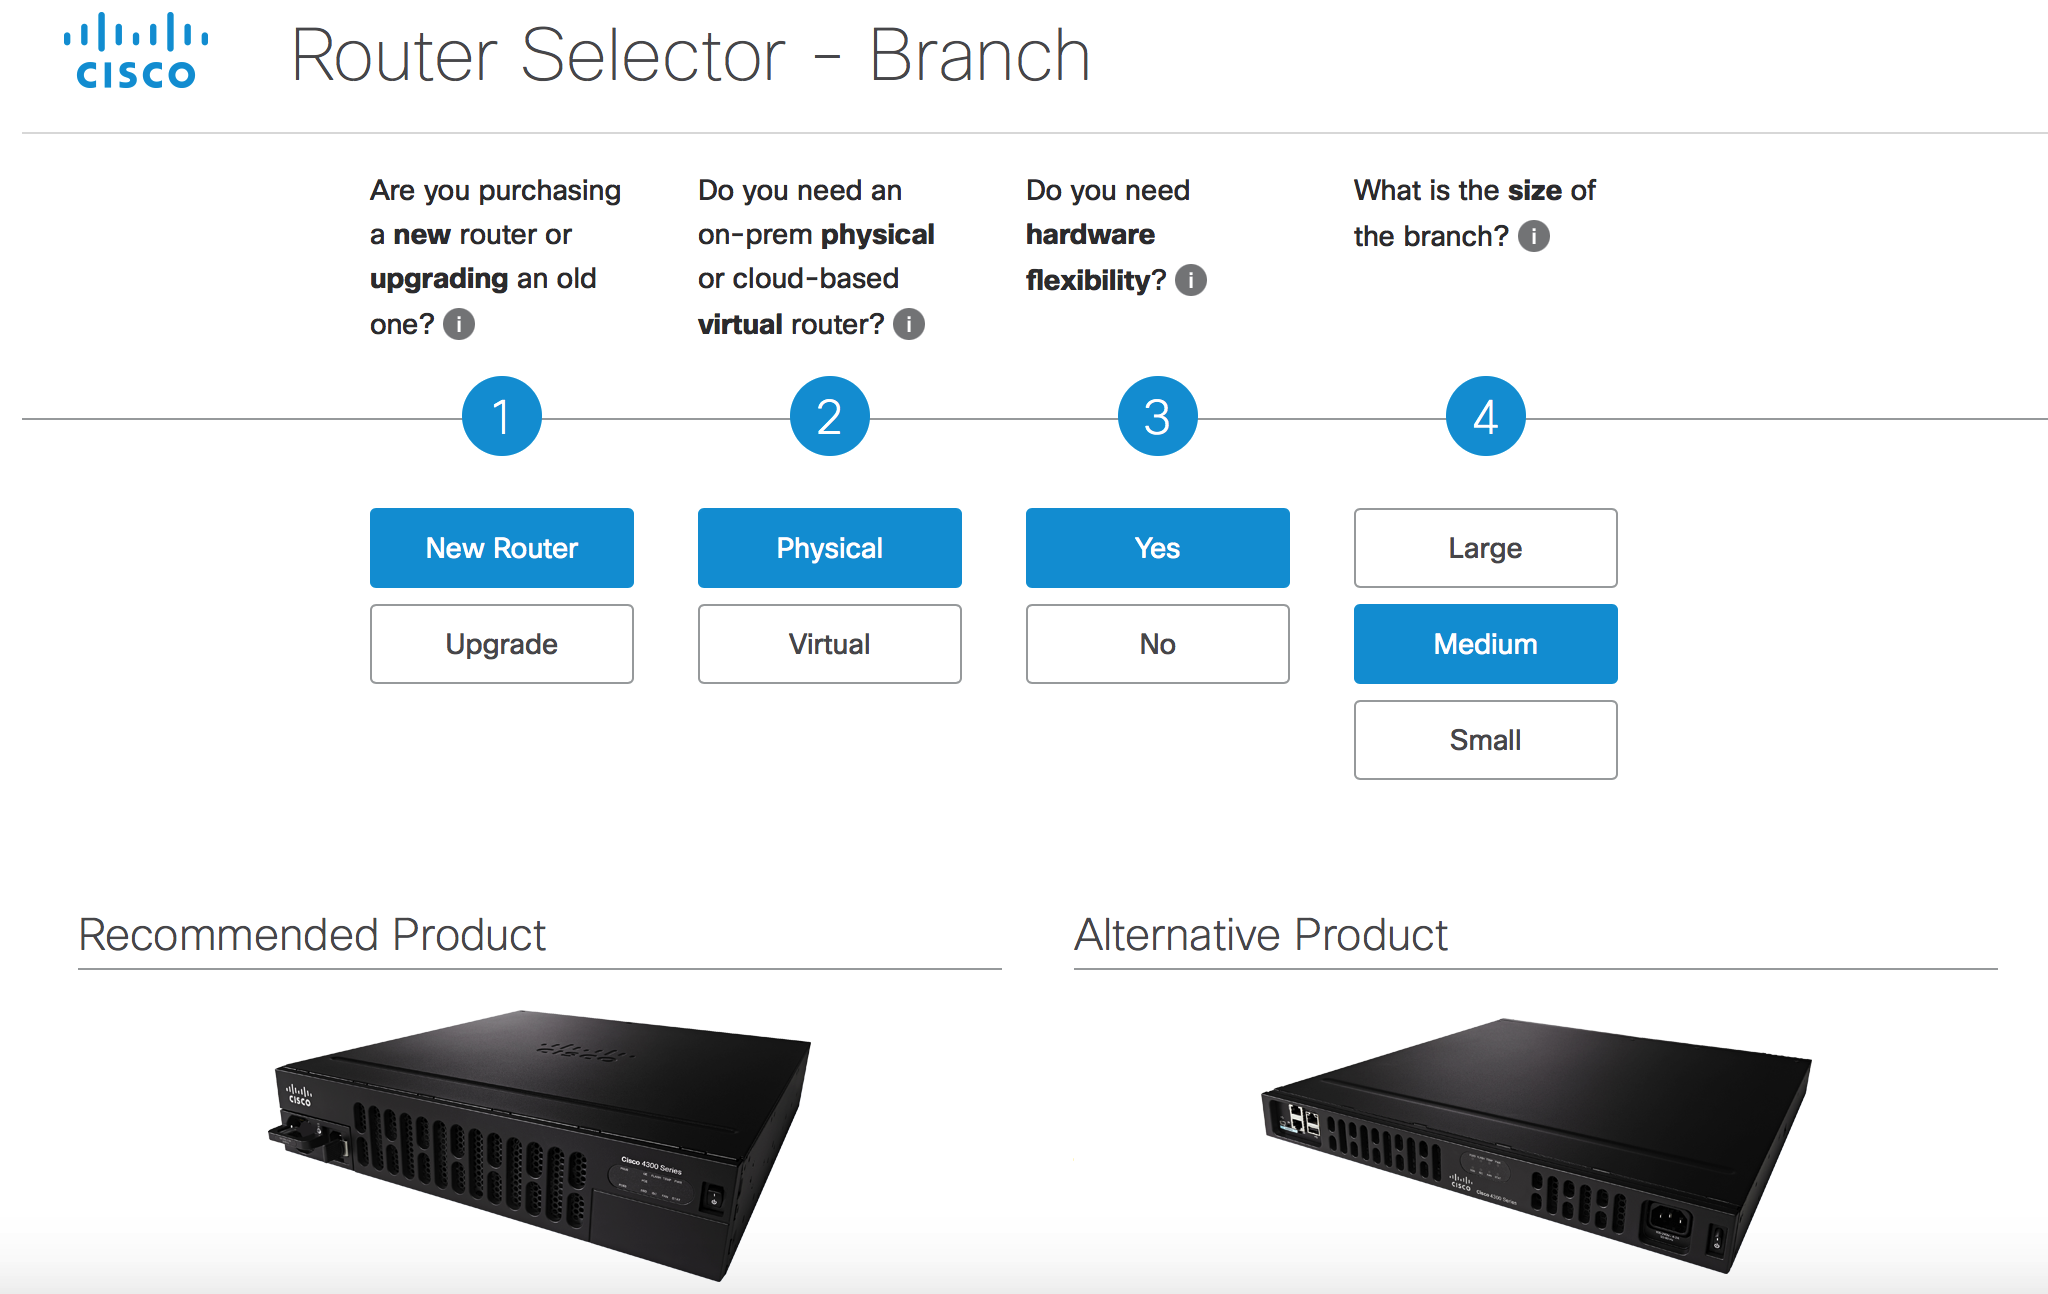 Cisco Router Selector may be your next tool to select the